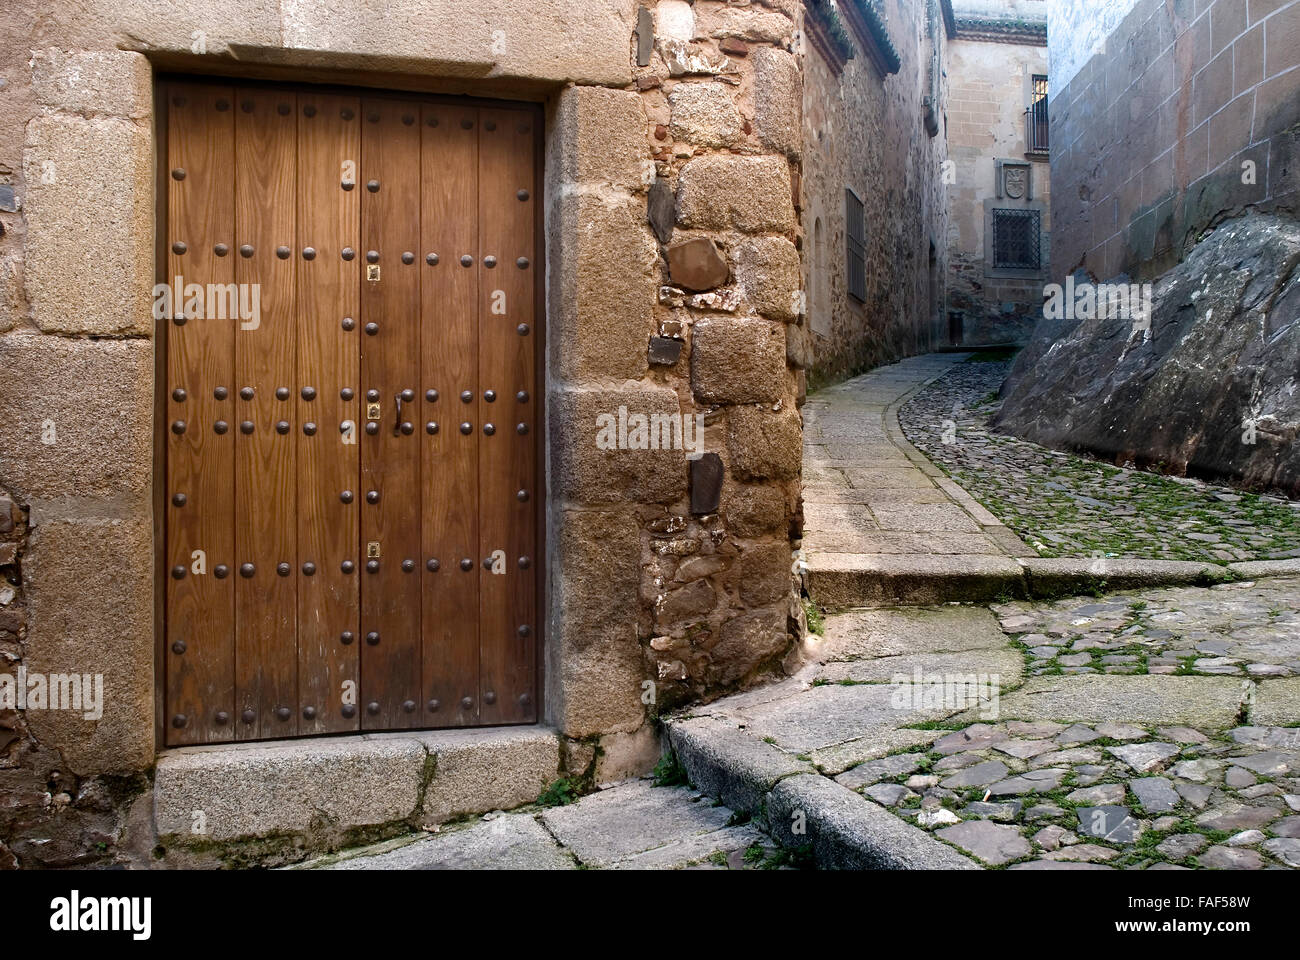 Street historic center of Caceres Extremadura Spain - Stock Image